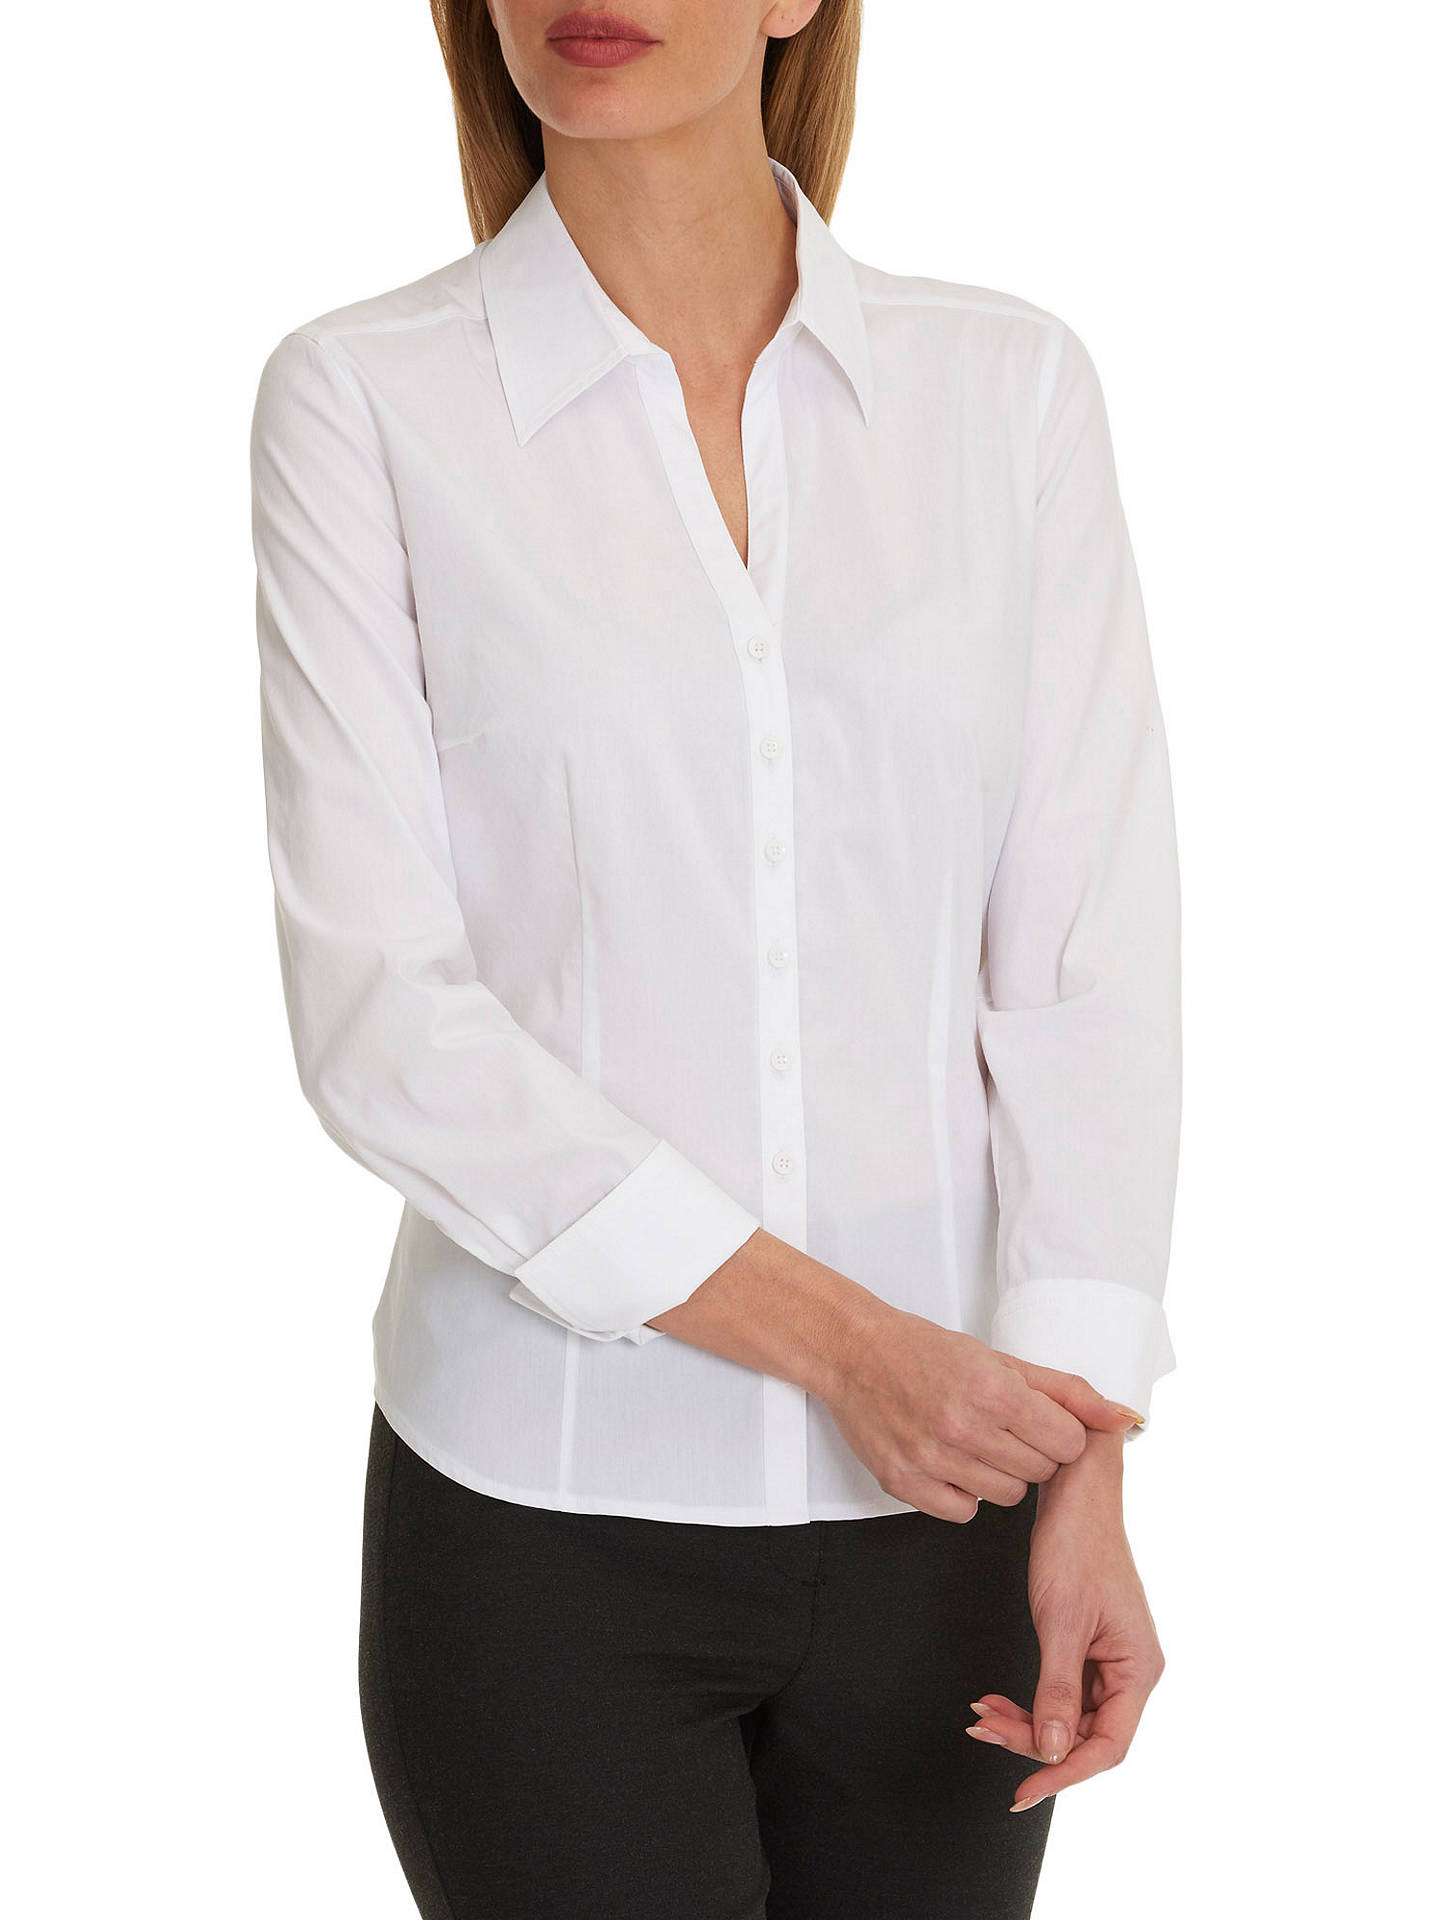 BuyBetty Barclay Stretch Blouse, Bright White, 10 Online at johnlewis.com